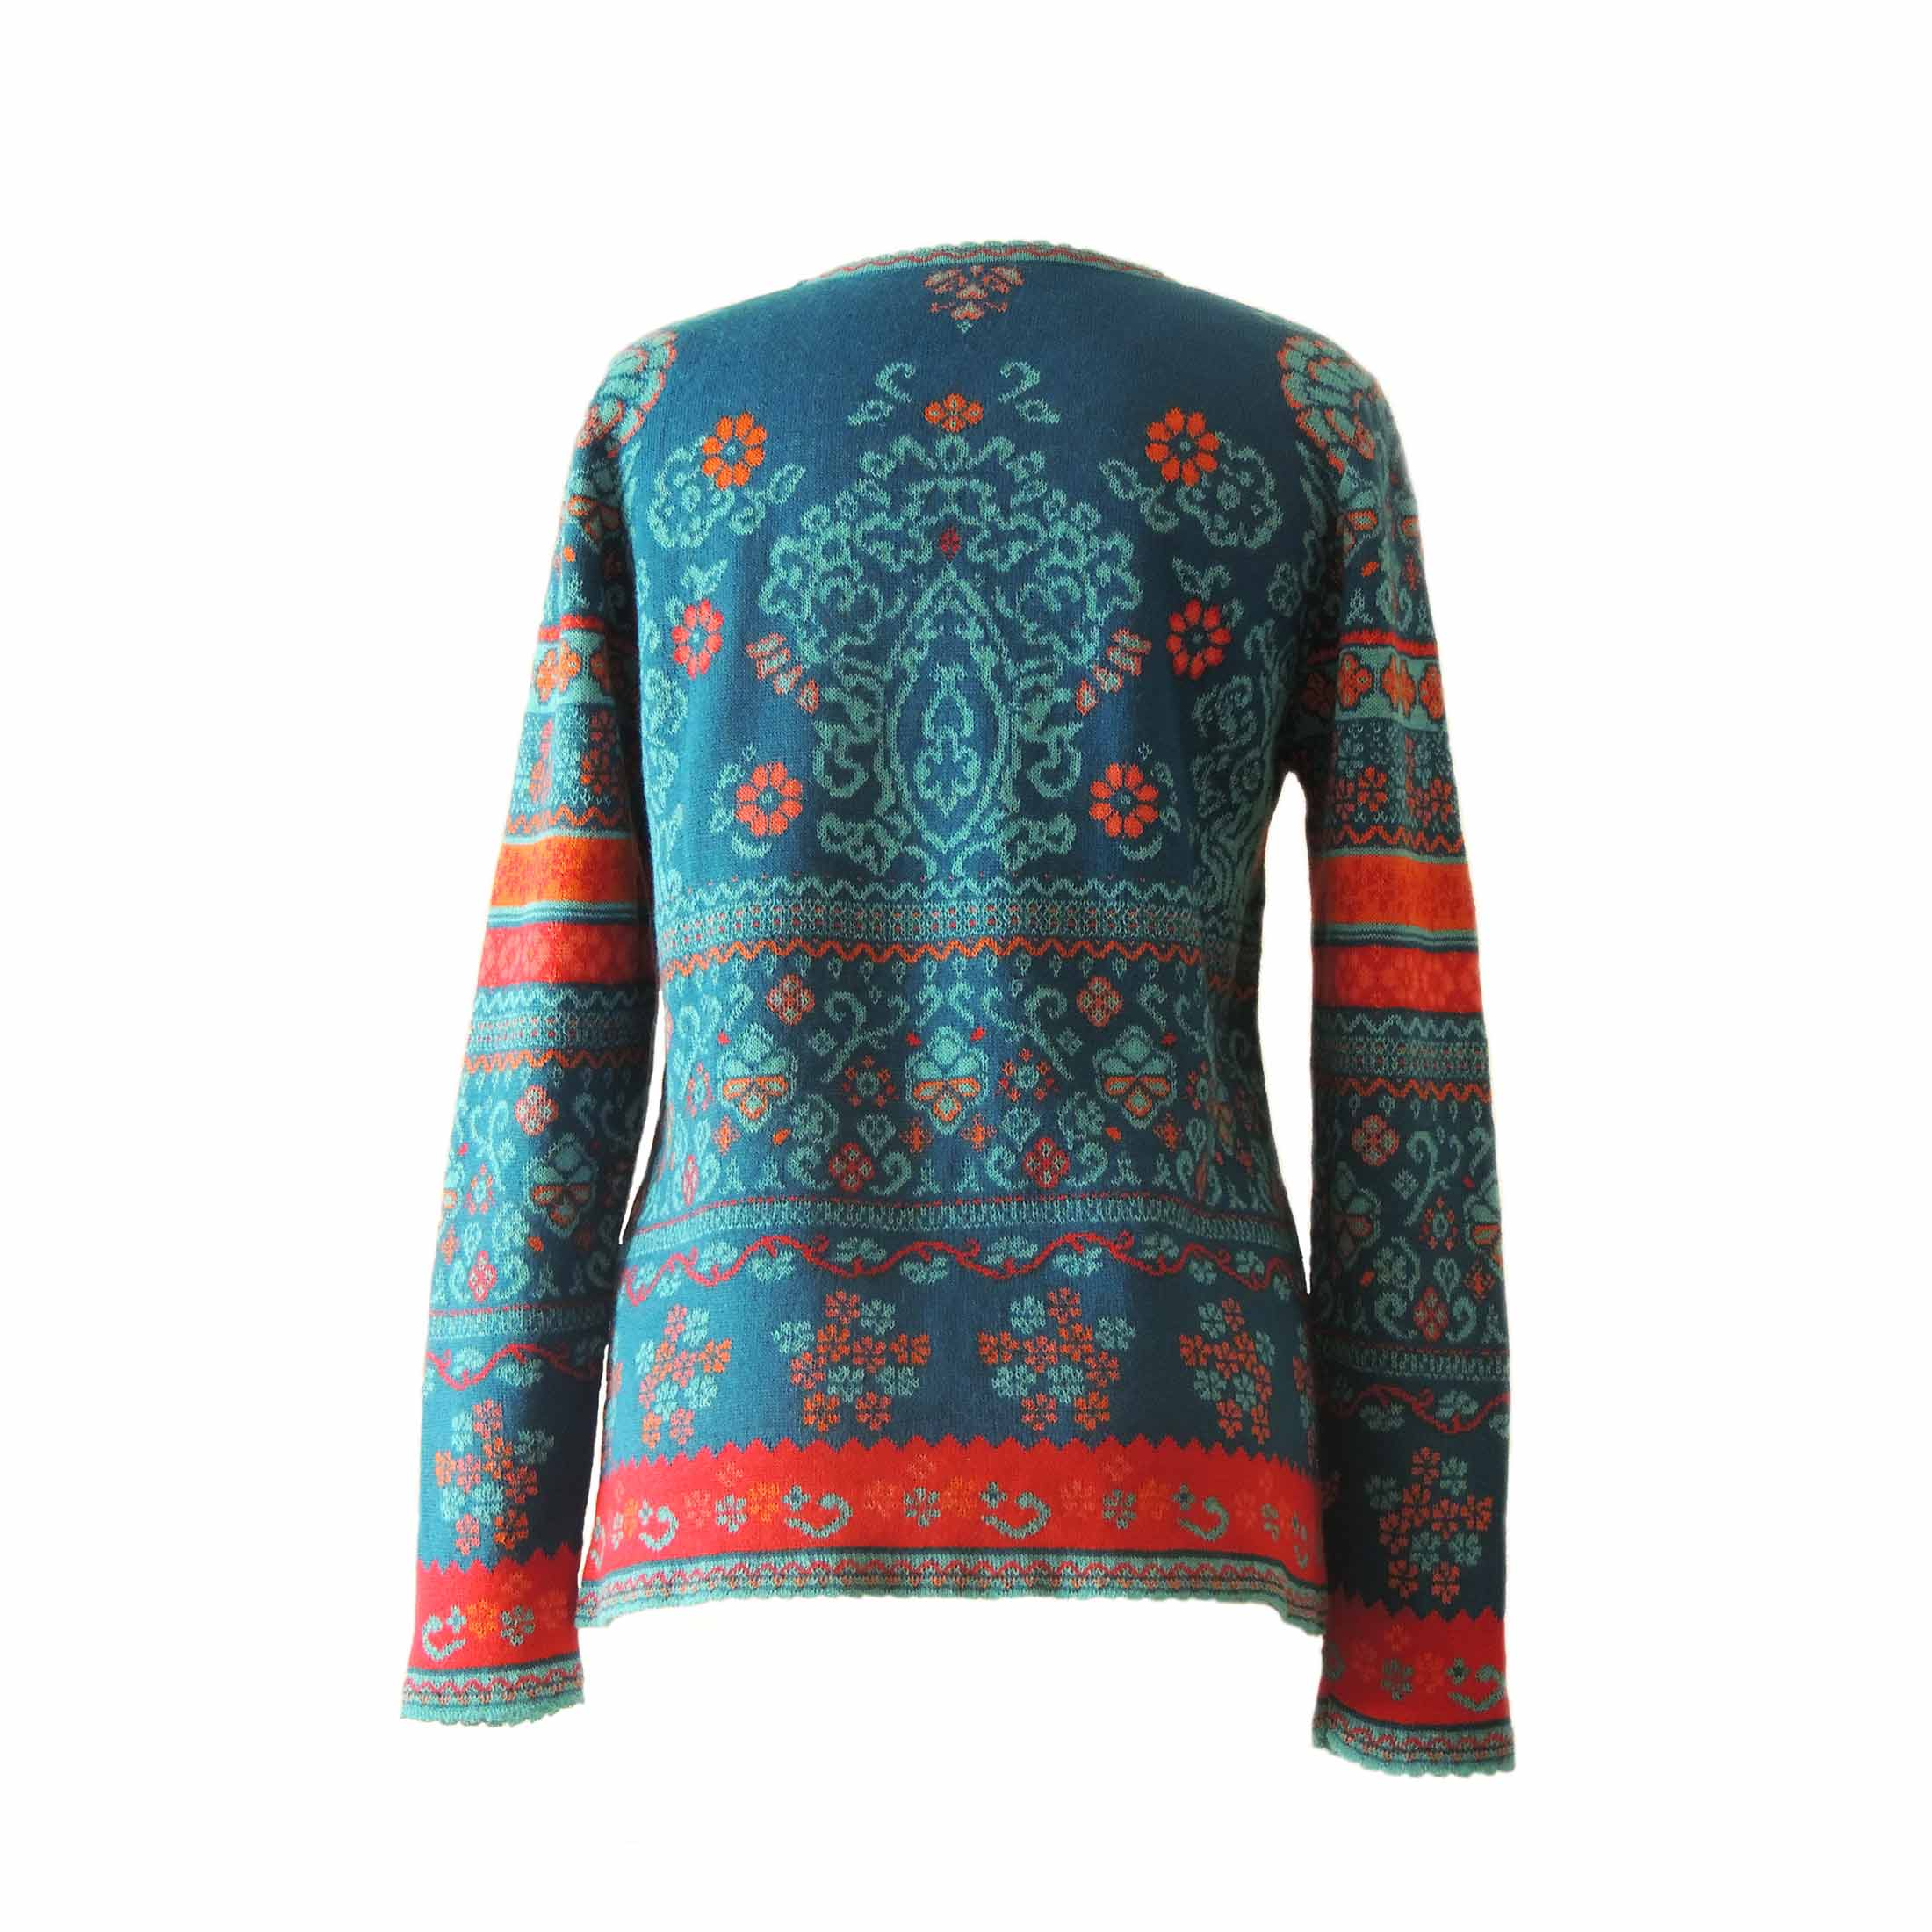 PopsPlaza.com Women's pullover fine knitted with jaqcuard pattern 100% soft and warm baby alpaca with crew neck and long sleeves. Blue multi